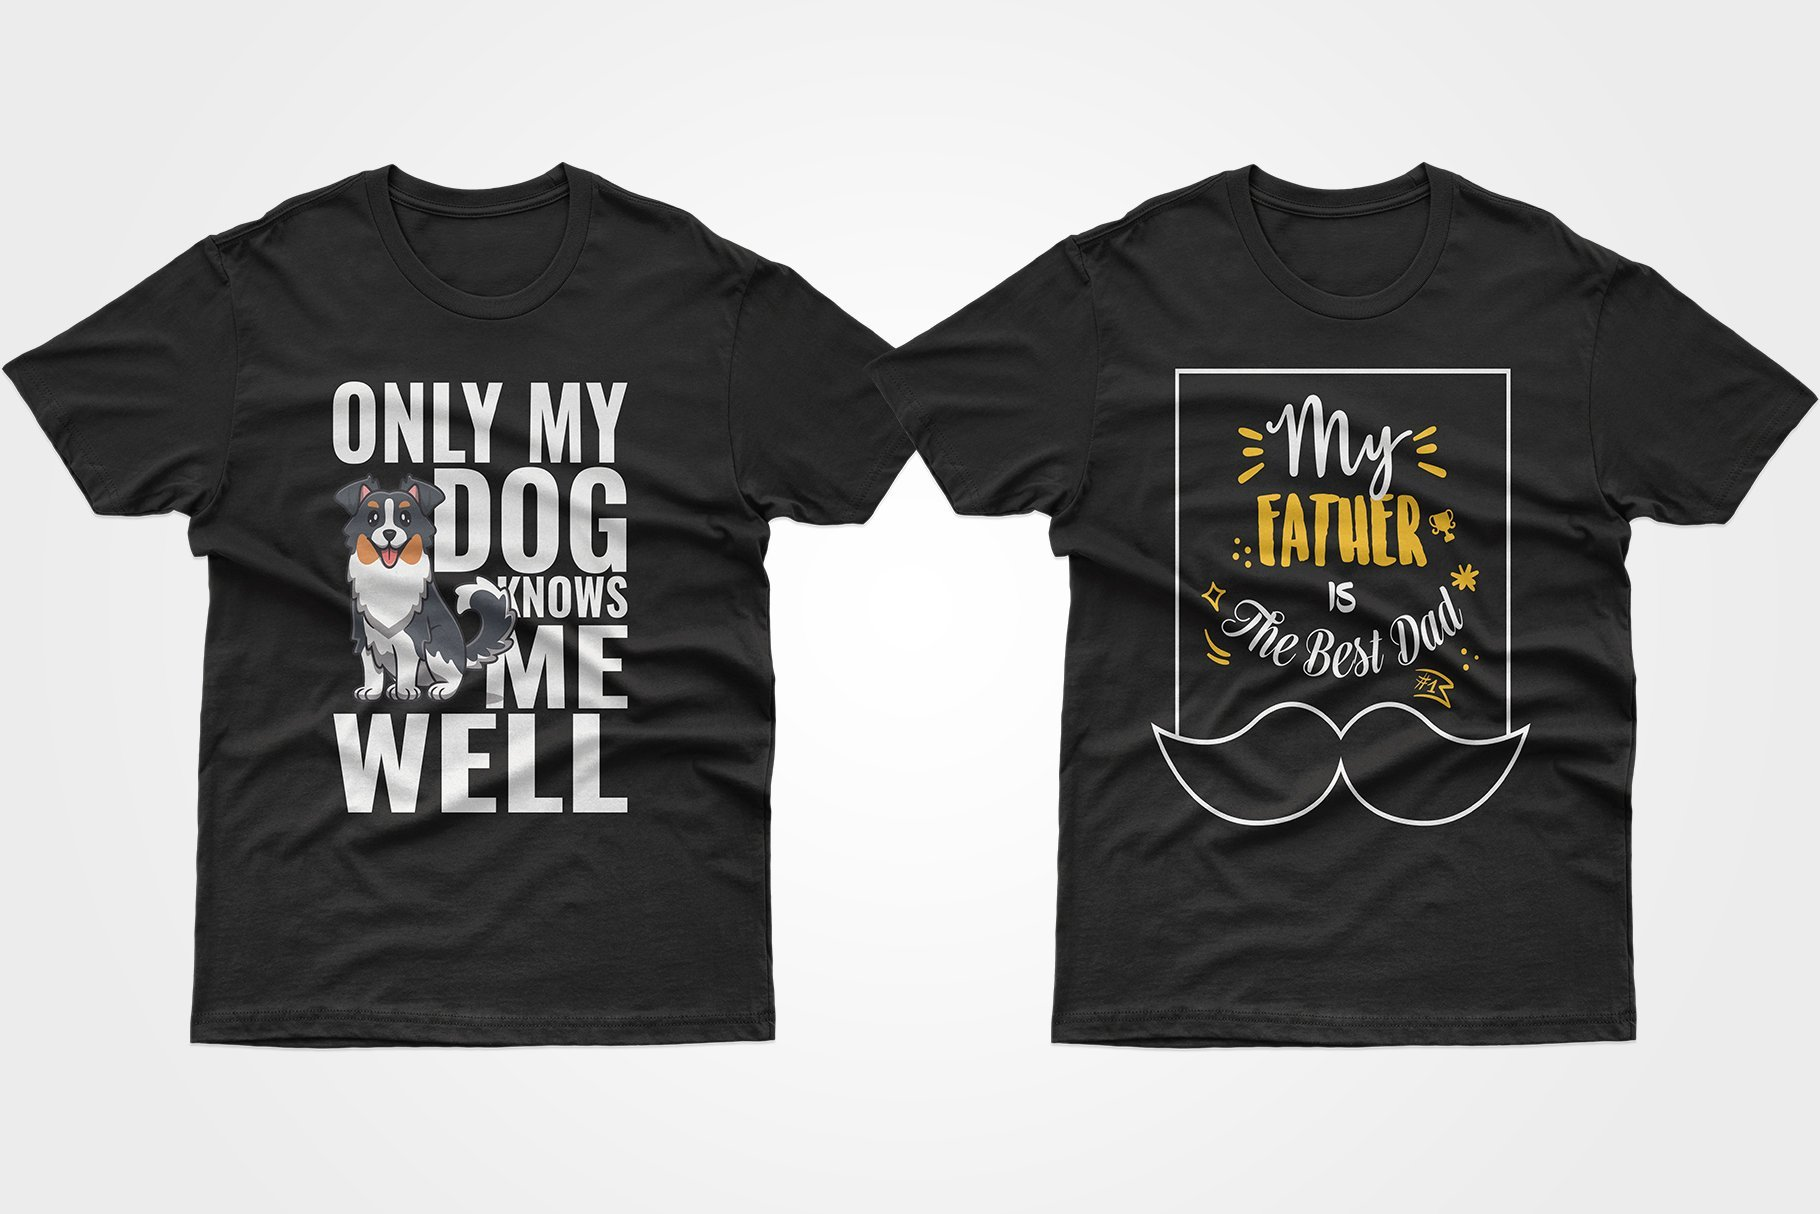 Two black T-shirts - one with a long-haired dog, the other with a phrase about father.